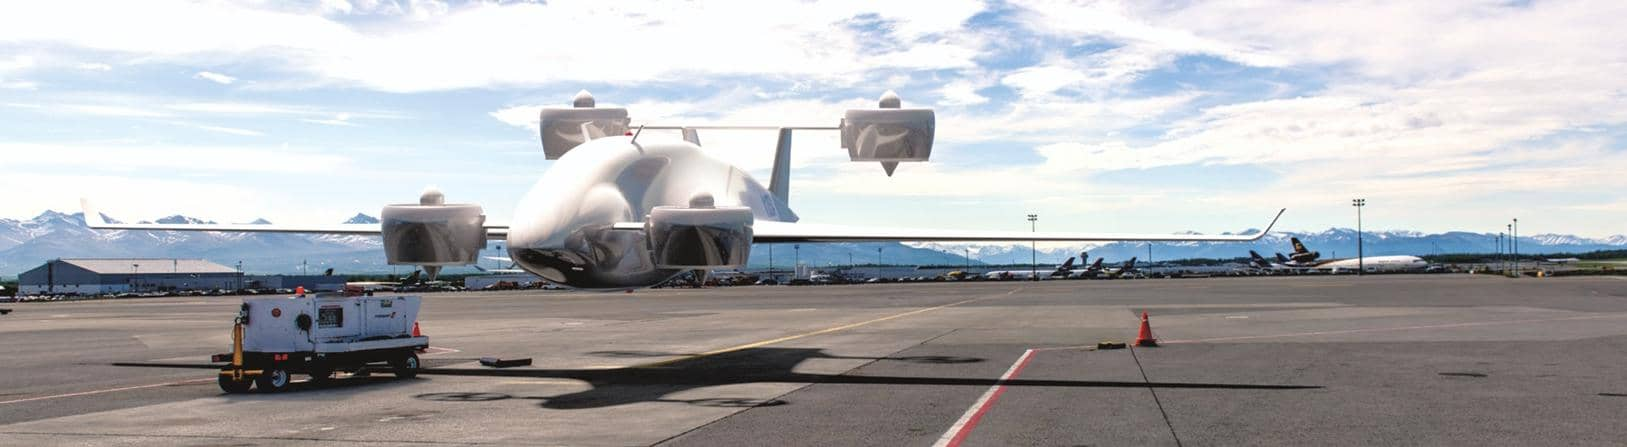 Sabrewing Unveils Prototype 'Rhaegal-A' Air Cargo Like No Other